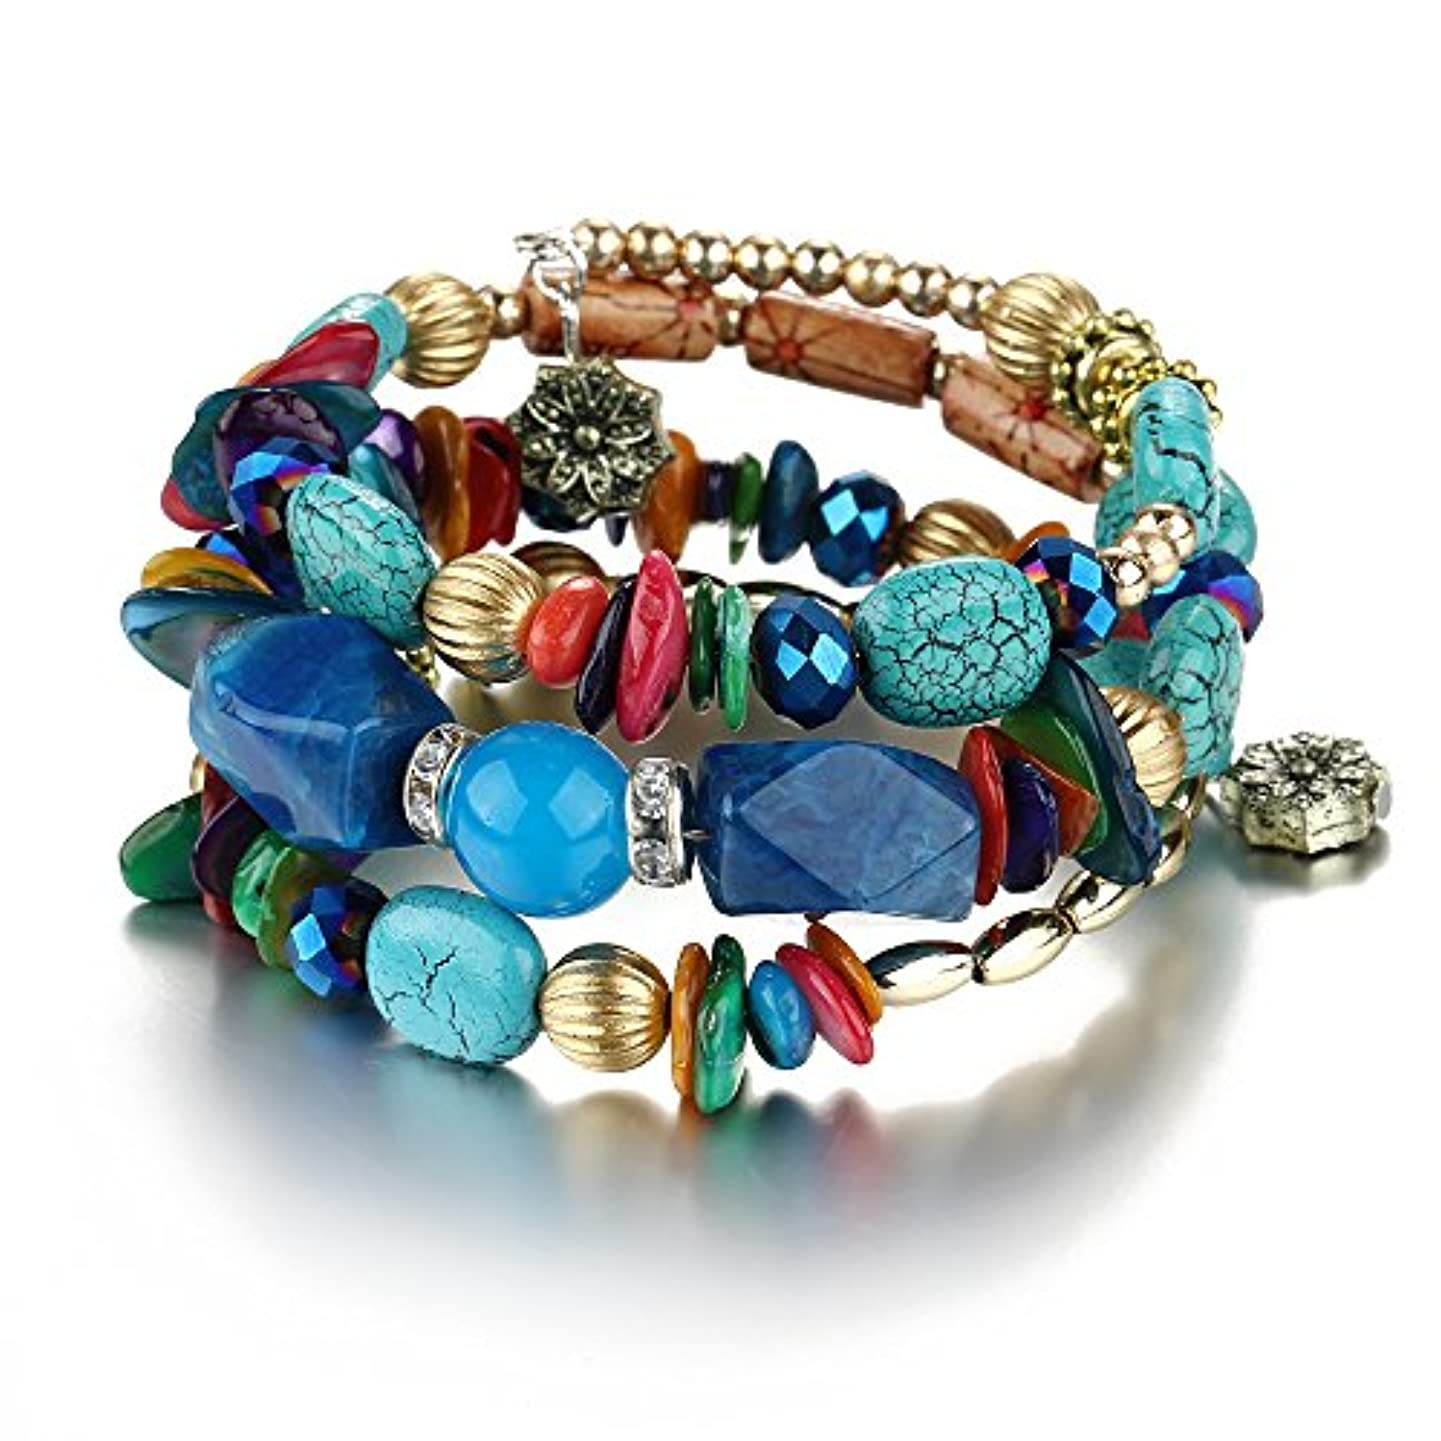 Setita Bohemia Turquoise Bracelet Crystal Bead Bangles for Women Girls